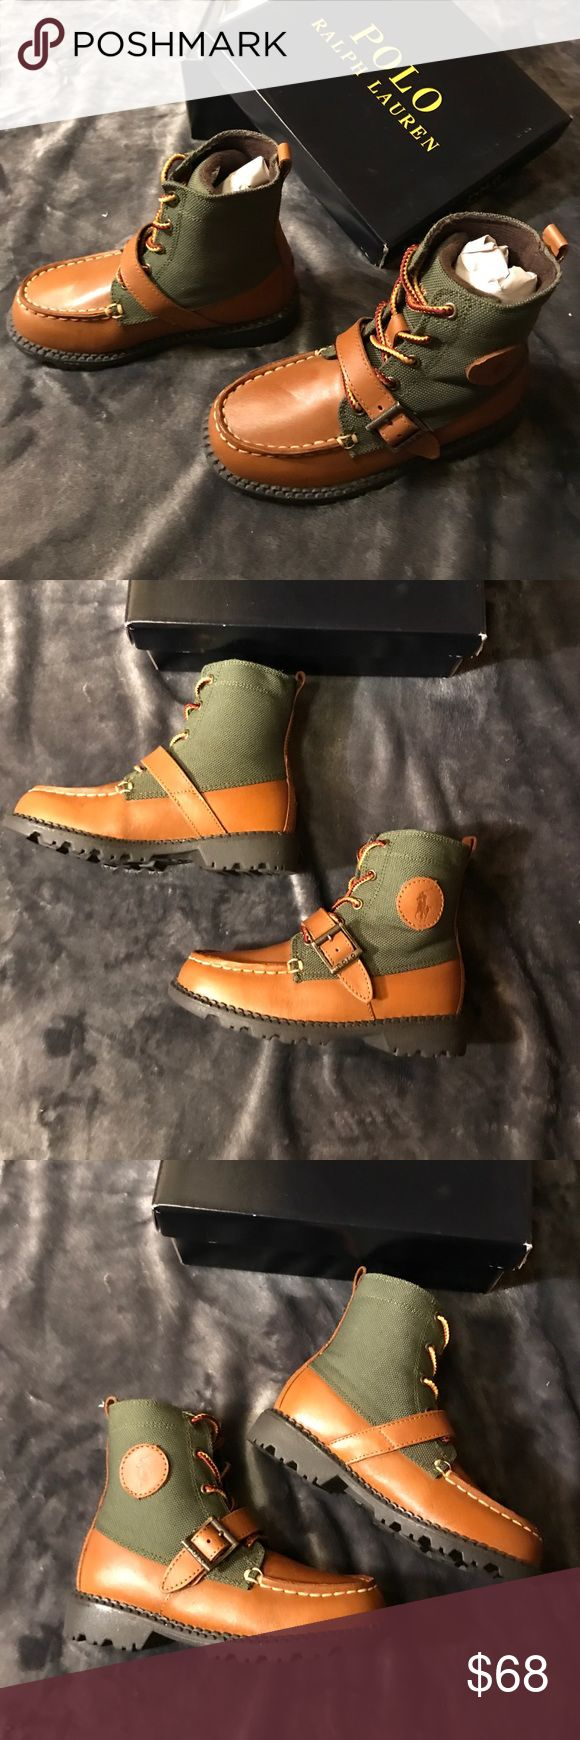 Polo Ralph Lauren Ranger Hi ll boots Gorgeous. Stylish. Very comfortable boots. Goes great with parka.  Color tan / olive. Size US 10 UK 9.5 EUR 26.5 CM 16 Polo by Ralph Lauren Shoes Boots